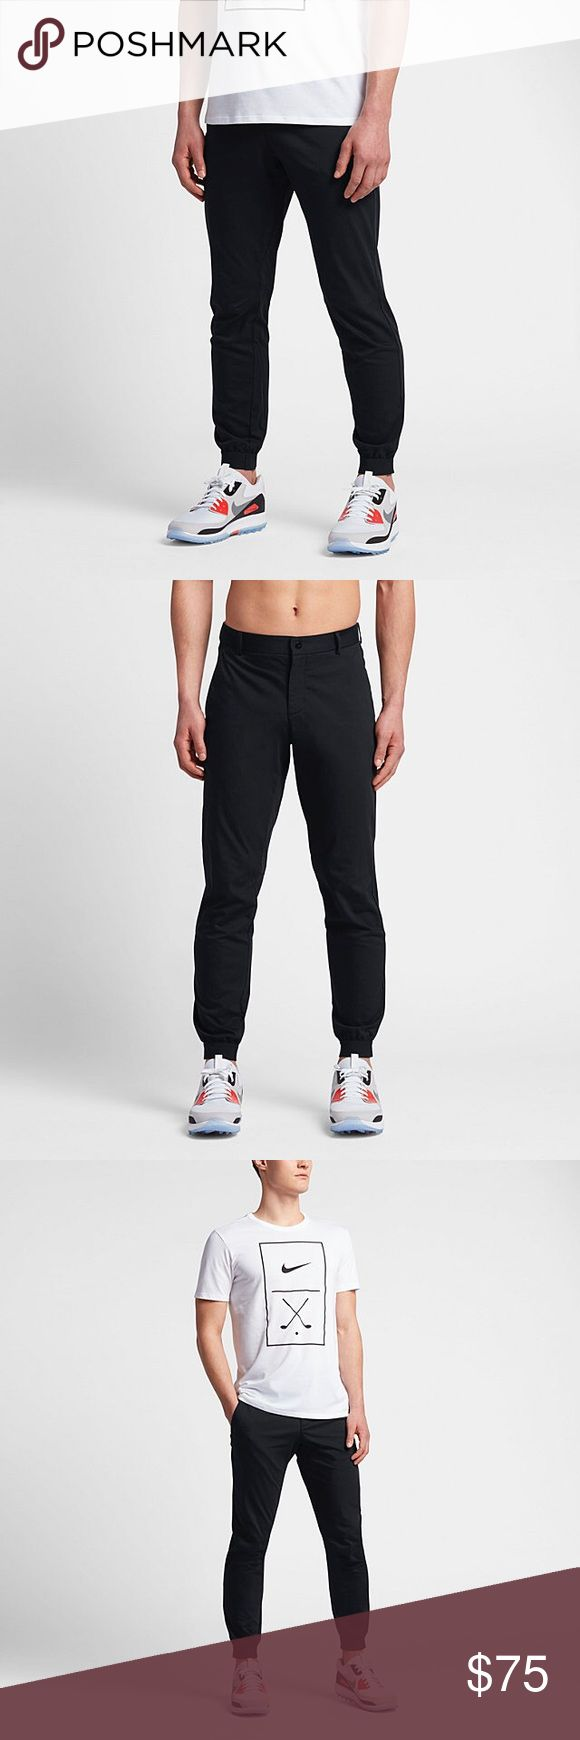 Men's Nike Flex Golf Joggers NWT 848069 Black % authentic, directly from Nike.  ✅ Brand New with tags.   ✅ Will Ship Out Next Day (Mon-Fri) ✅ Open to reasonable Offers ✅Send any other ❓my way! No Trades unfortunately                          Thanks for looking! ✌. Nike Pants Sweatpants & Joggers